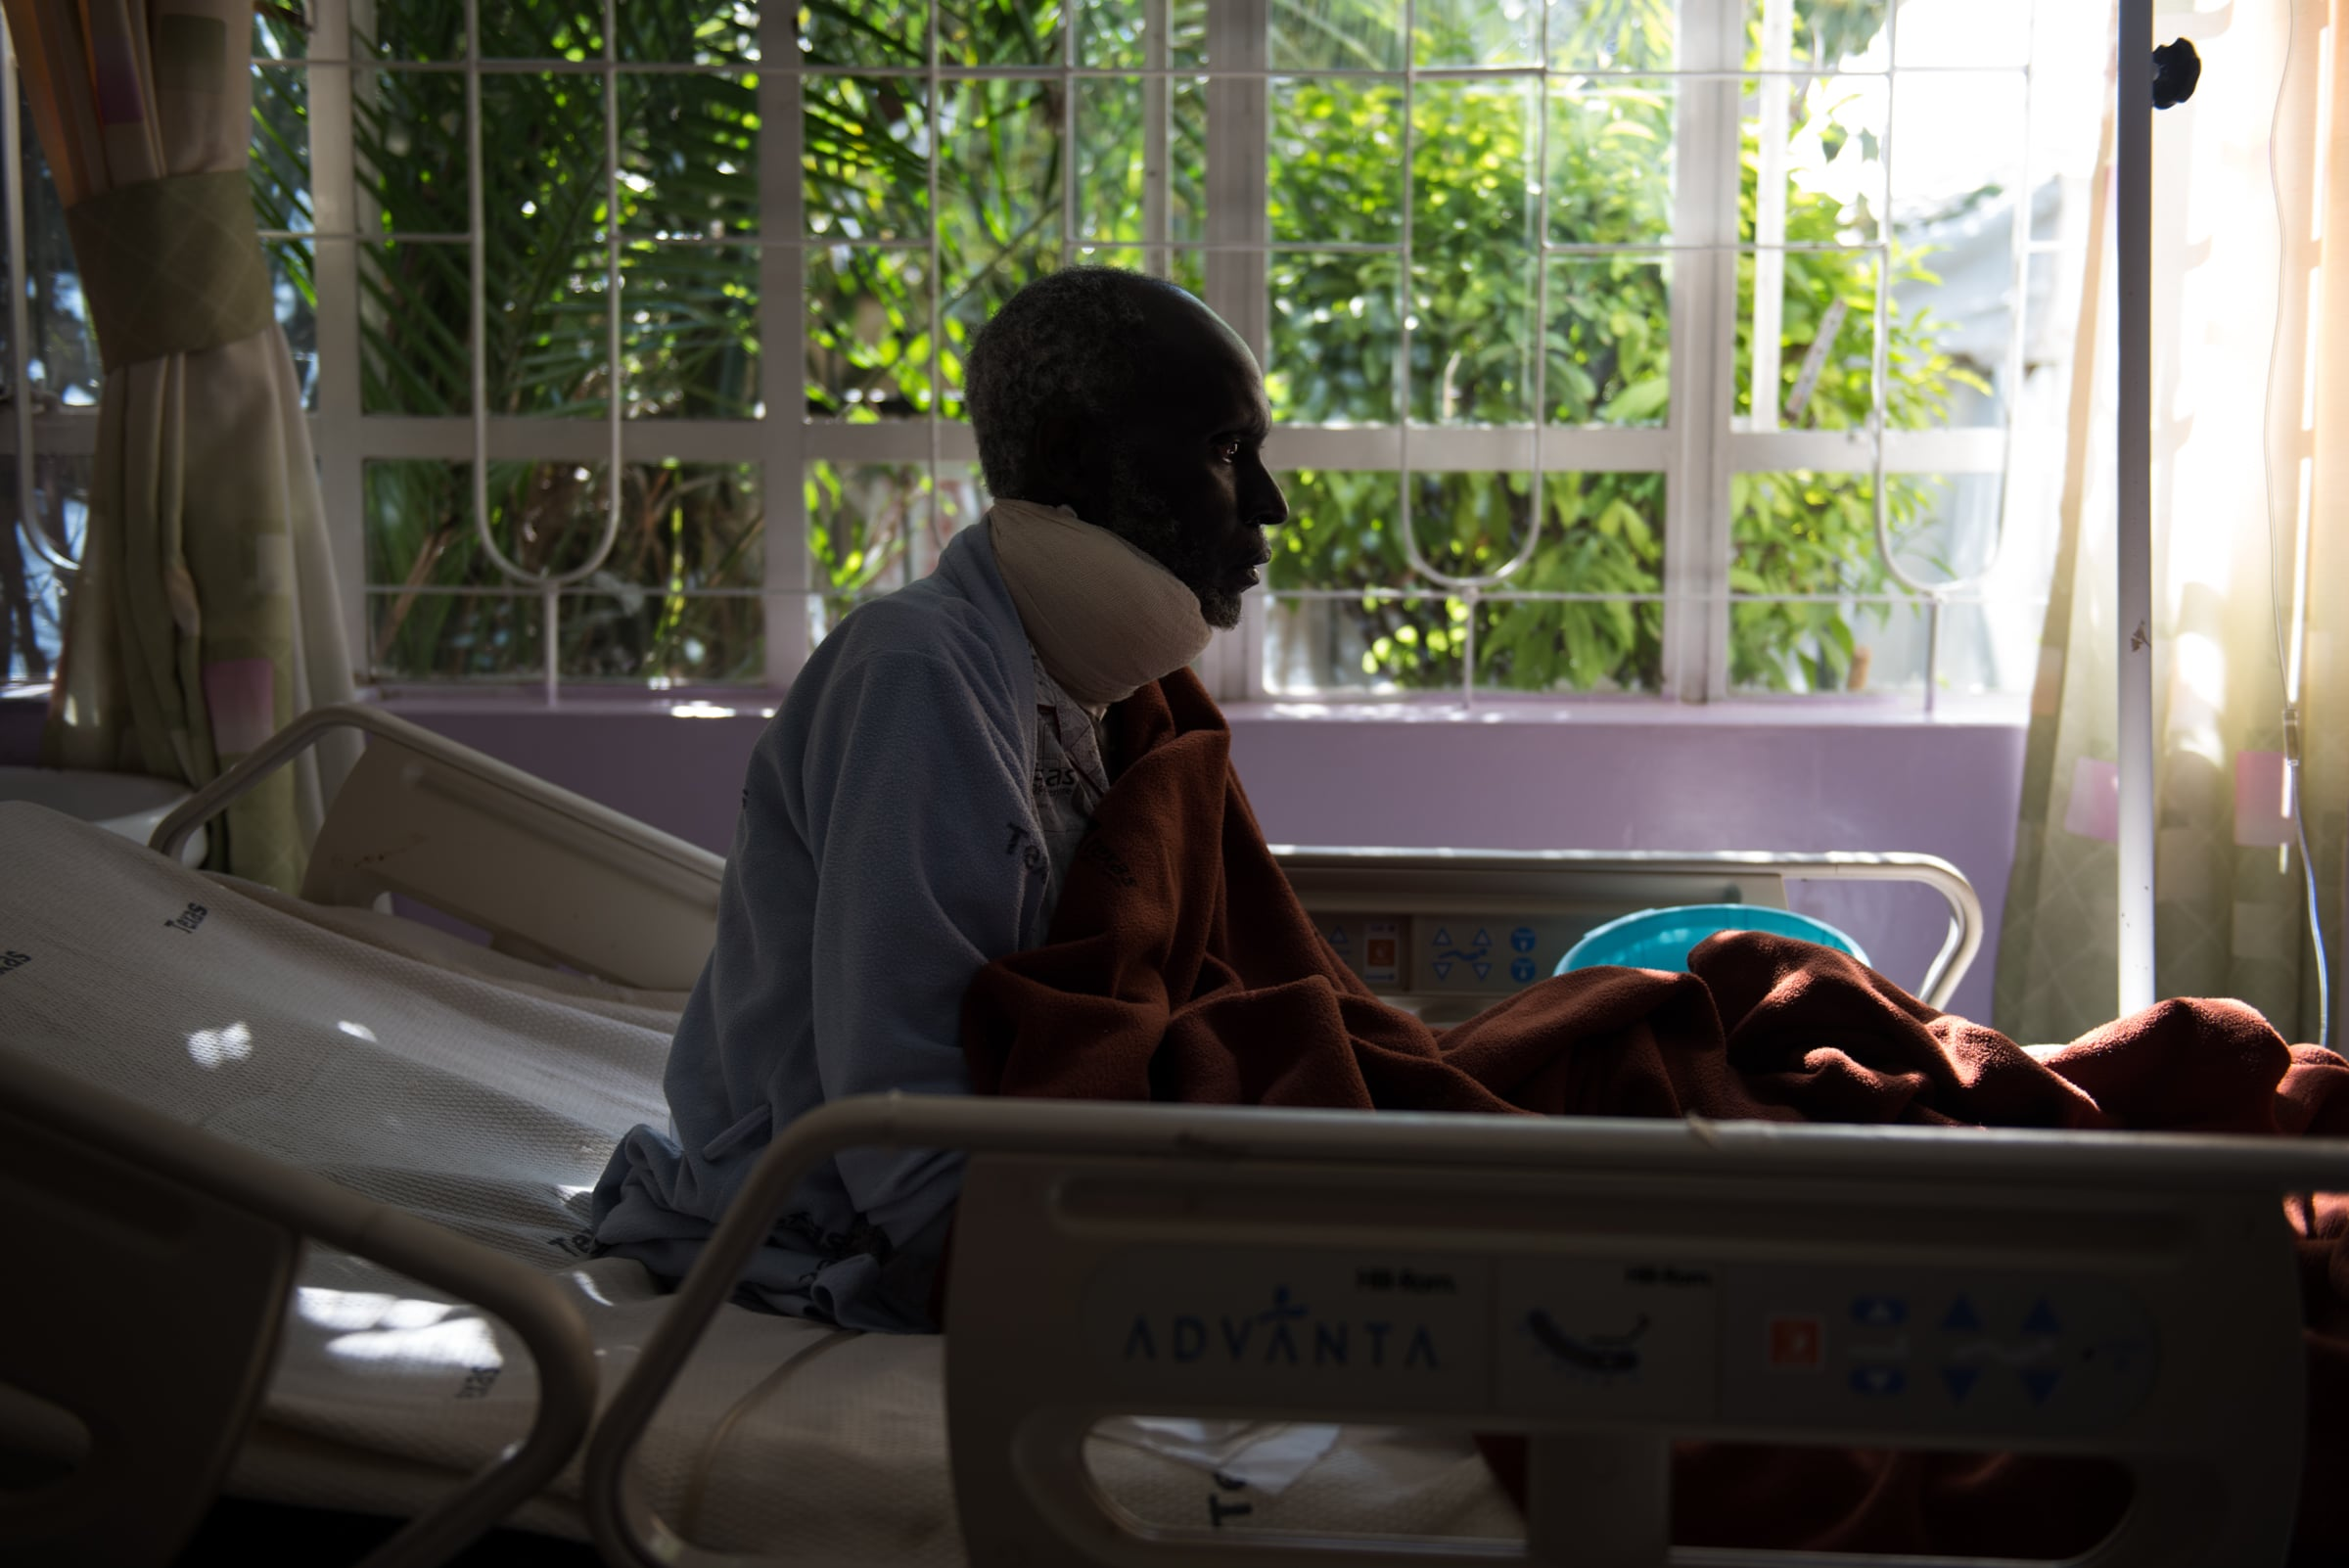 Samwell Mosota Omaiyo sits up in his bed on Sunday afternoon at the Texas Cancer Centre in-patient facility in Nairobi, Kenya on Sunday, Aug. 23, 2015. Nurses here are trained in palliative care and give round the clock care to over a dozen patients in this small medical building.